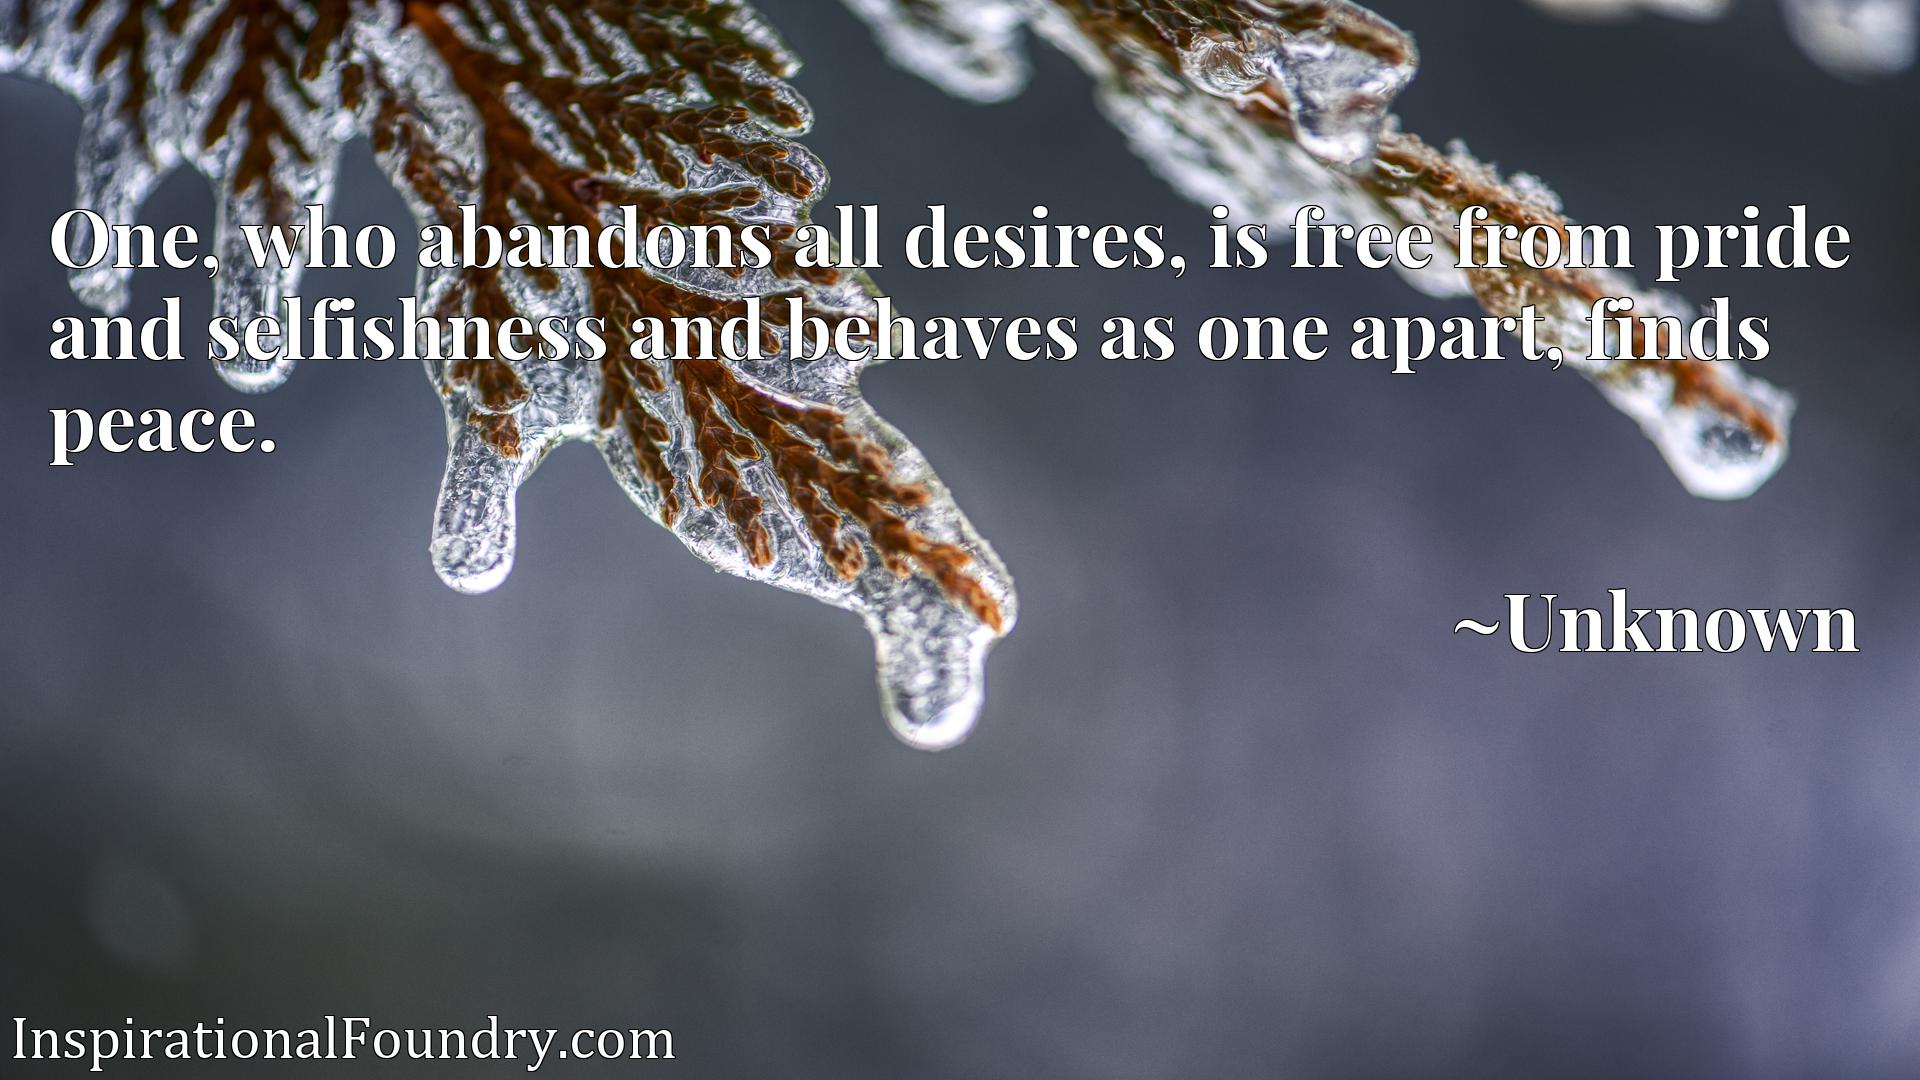 One, who abandons all desires, is free from pride and selfishness and behaves as one apart, finds peace.